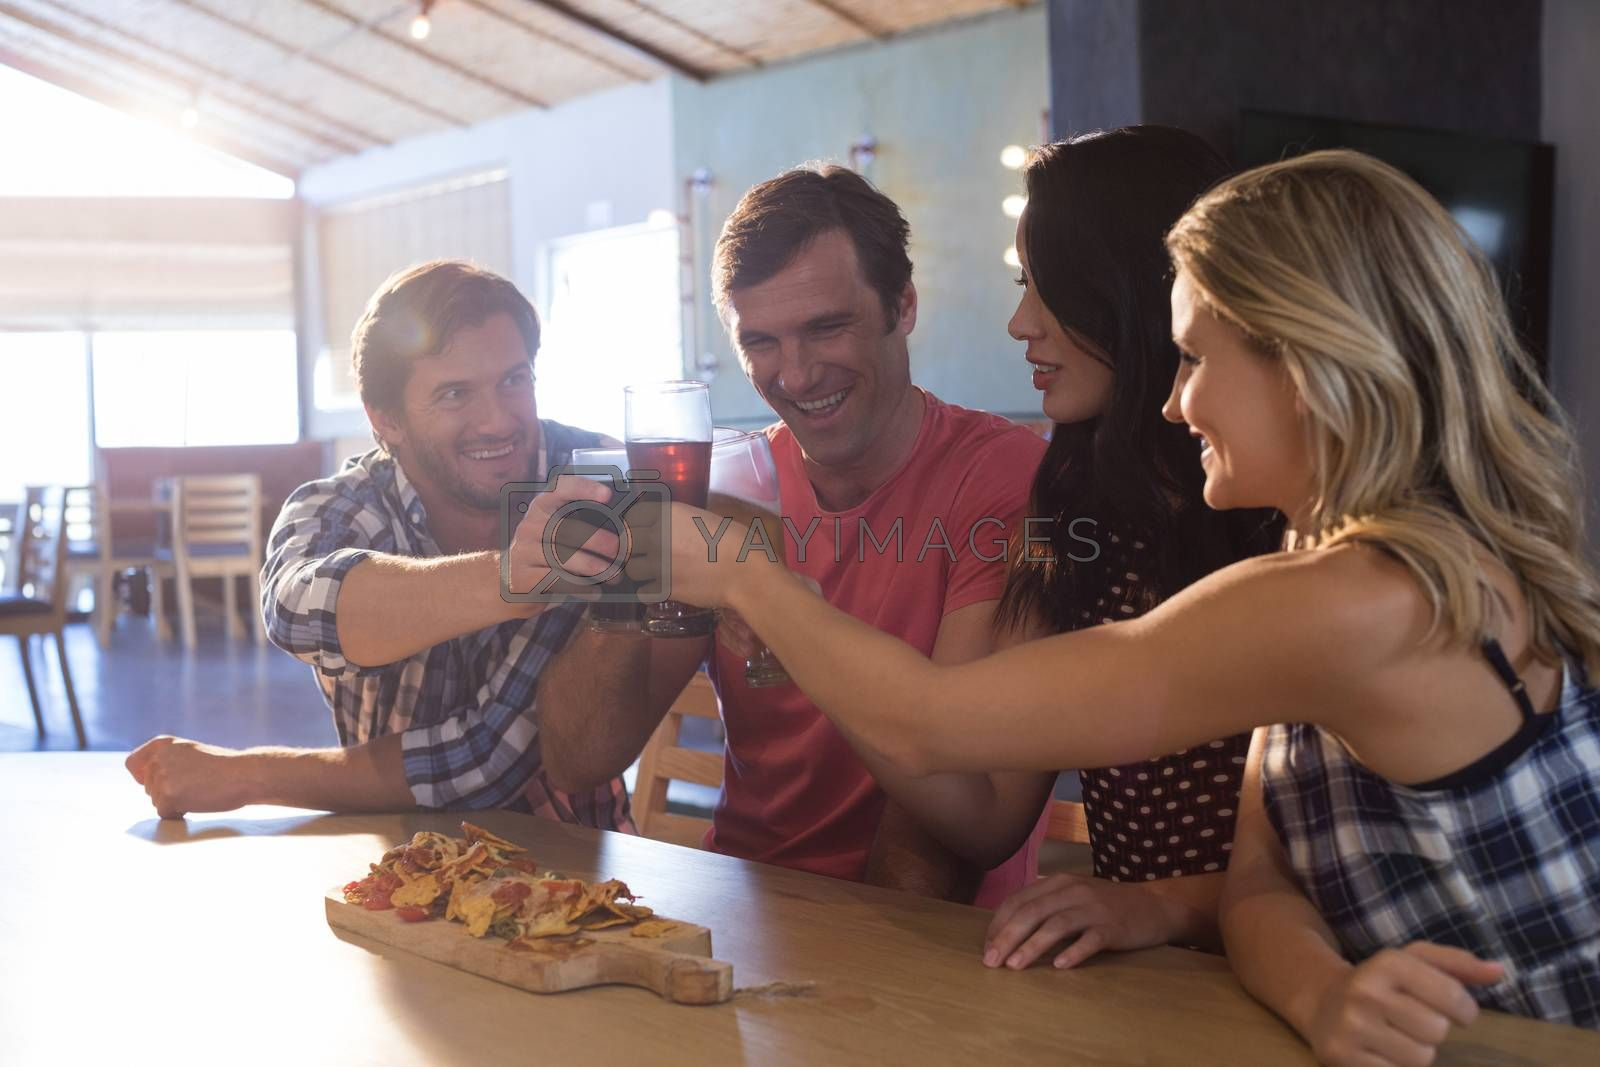 Friends enjoying food and drink at bar counter by Wavebreakmedia